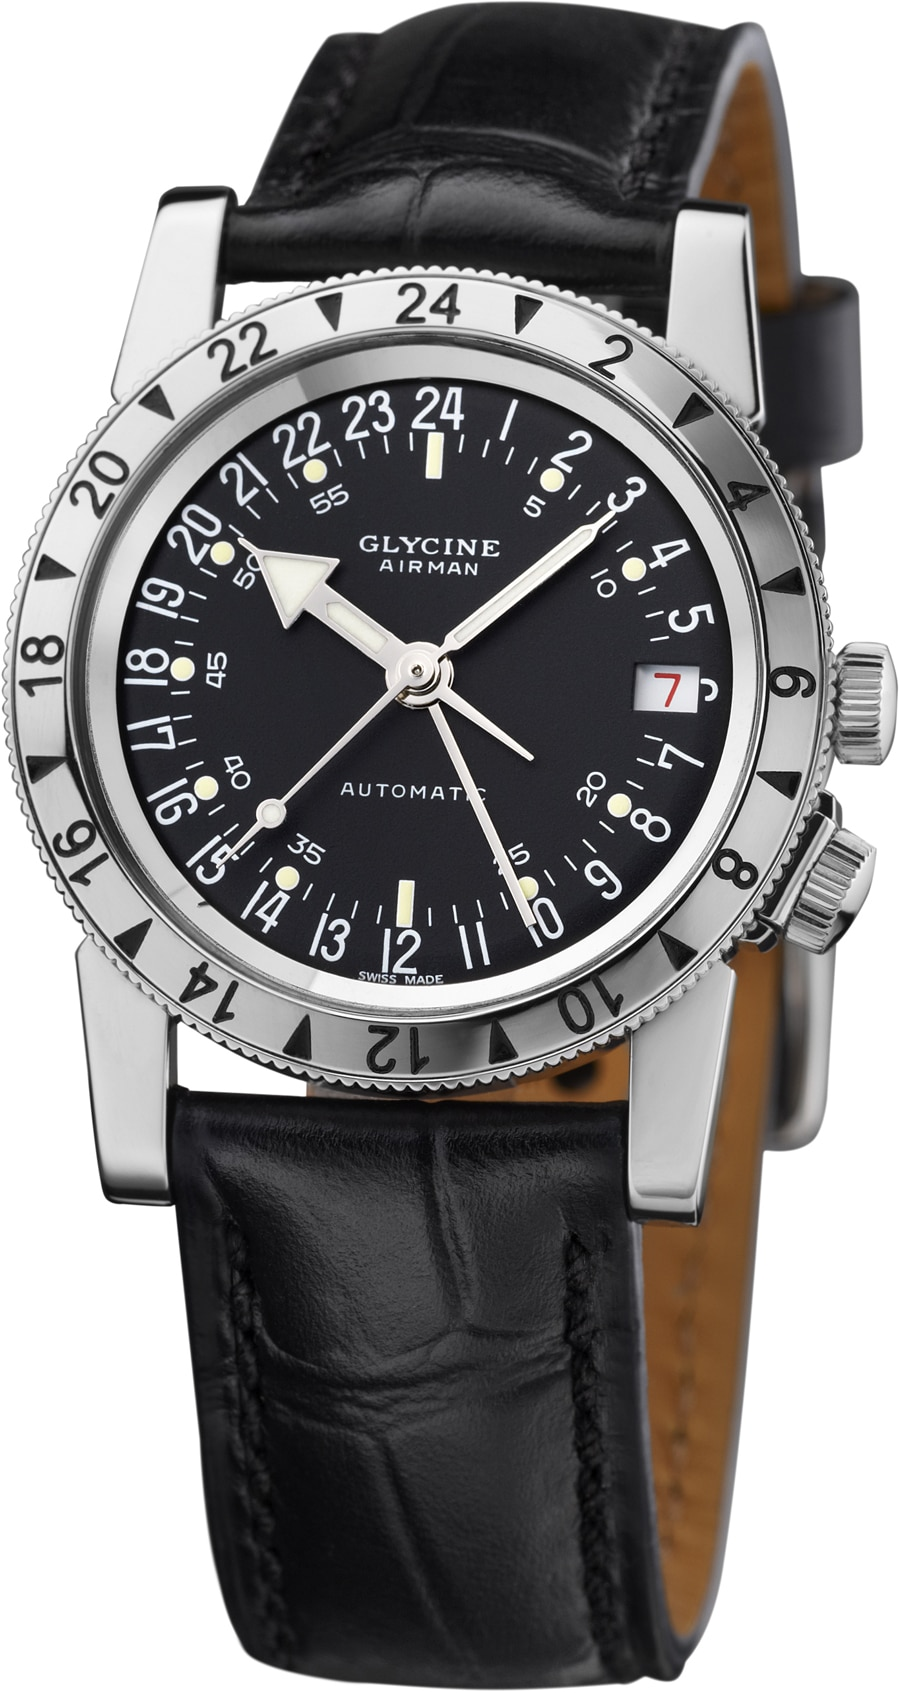 Glycine: Airman No. 1